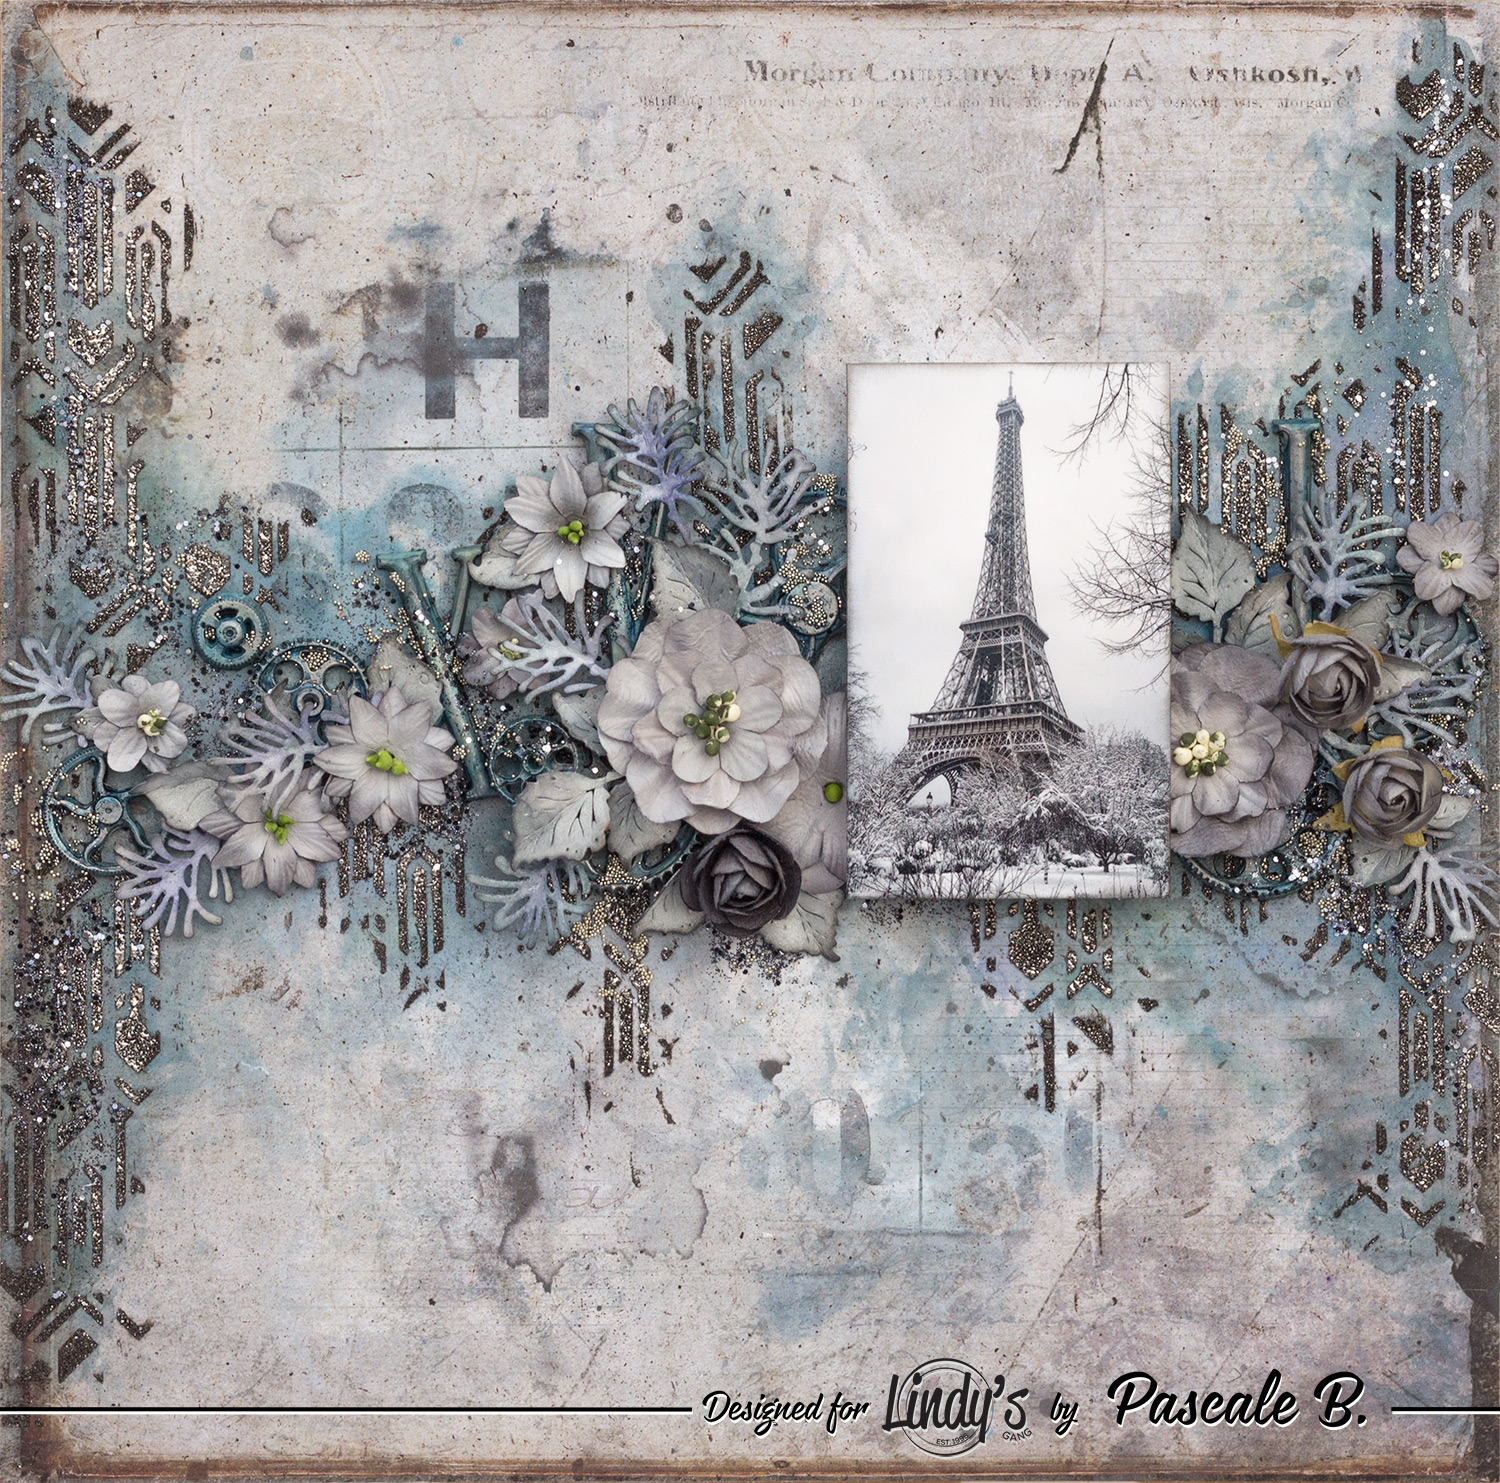 Eiffel Tower – Mixed media layout by Pascale B.